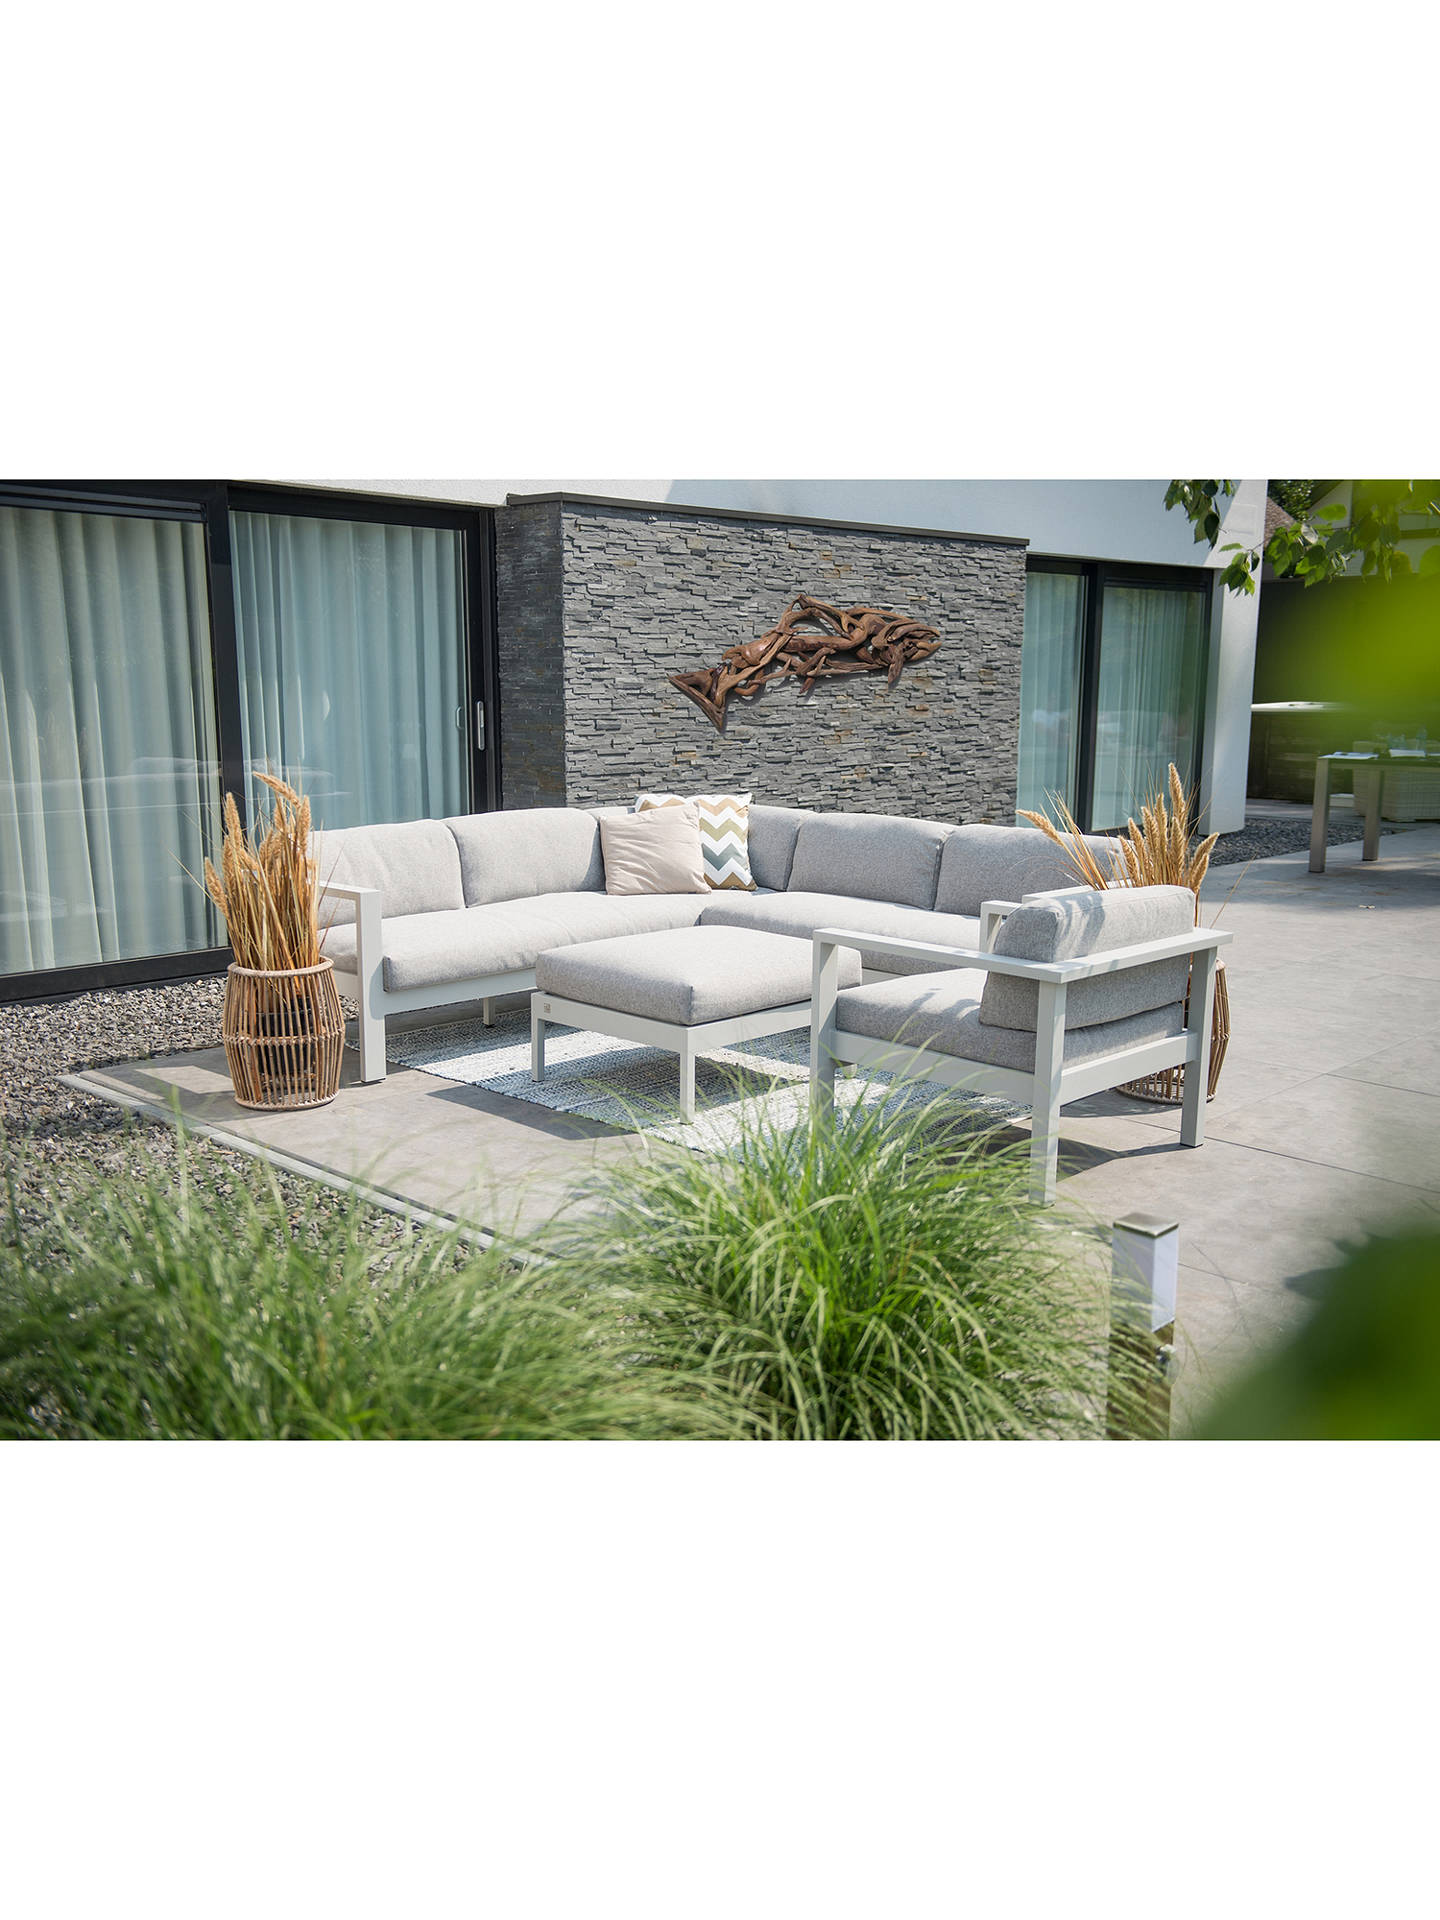 Buy4 Seasons Galaxy 6 Seater Garden Corner Sofa With Footstool / Table, Seashell Online at johnlewis.com